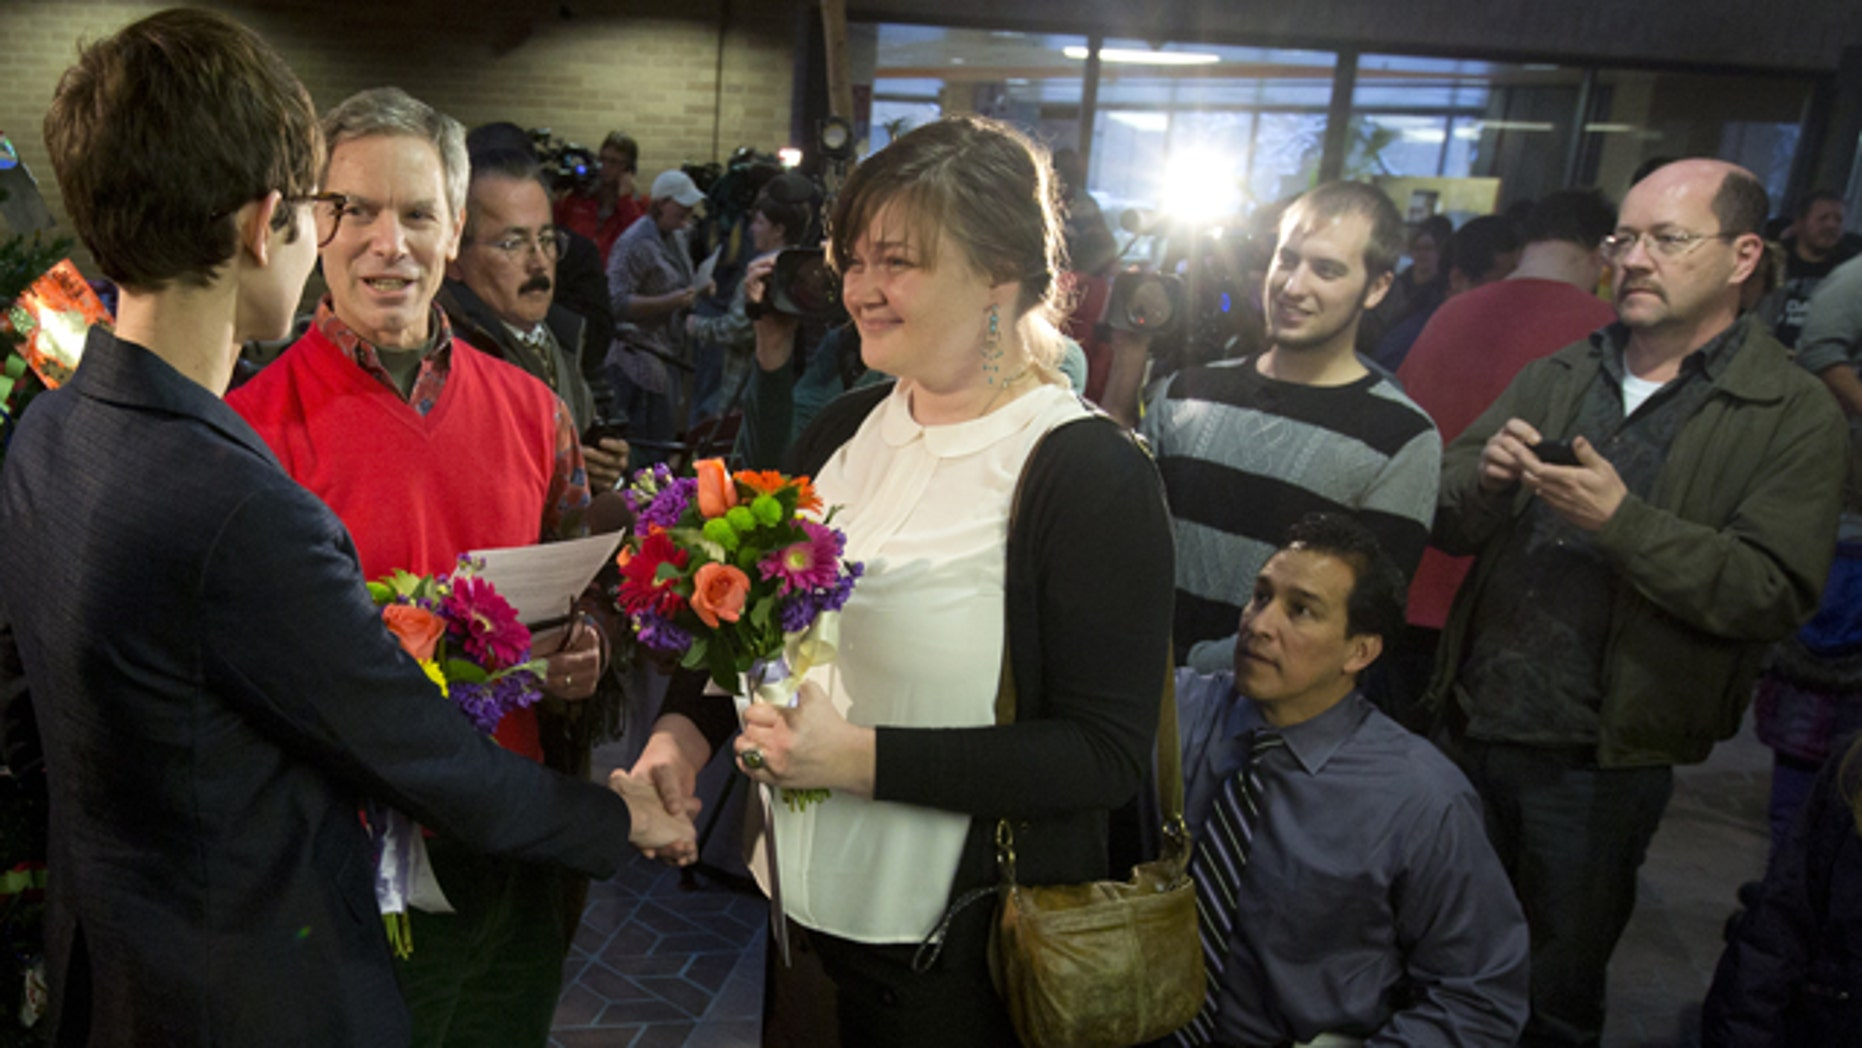 Dec. 20, 2013: Natalie Dicou, left, and Nicole Christensen, right, are married by Salt Lake City Mayor Ralph Becker, middle, in the lobby of the Salt Lake County Clerk's Office in Salt Lake City.